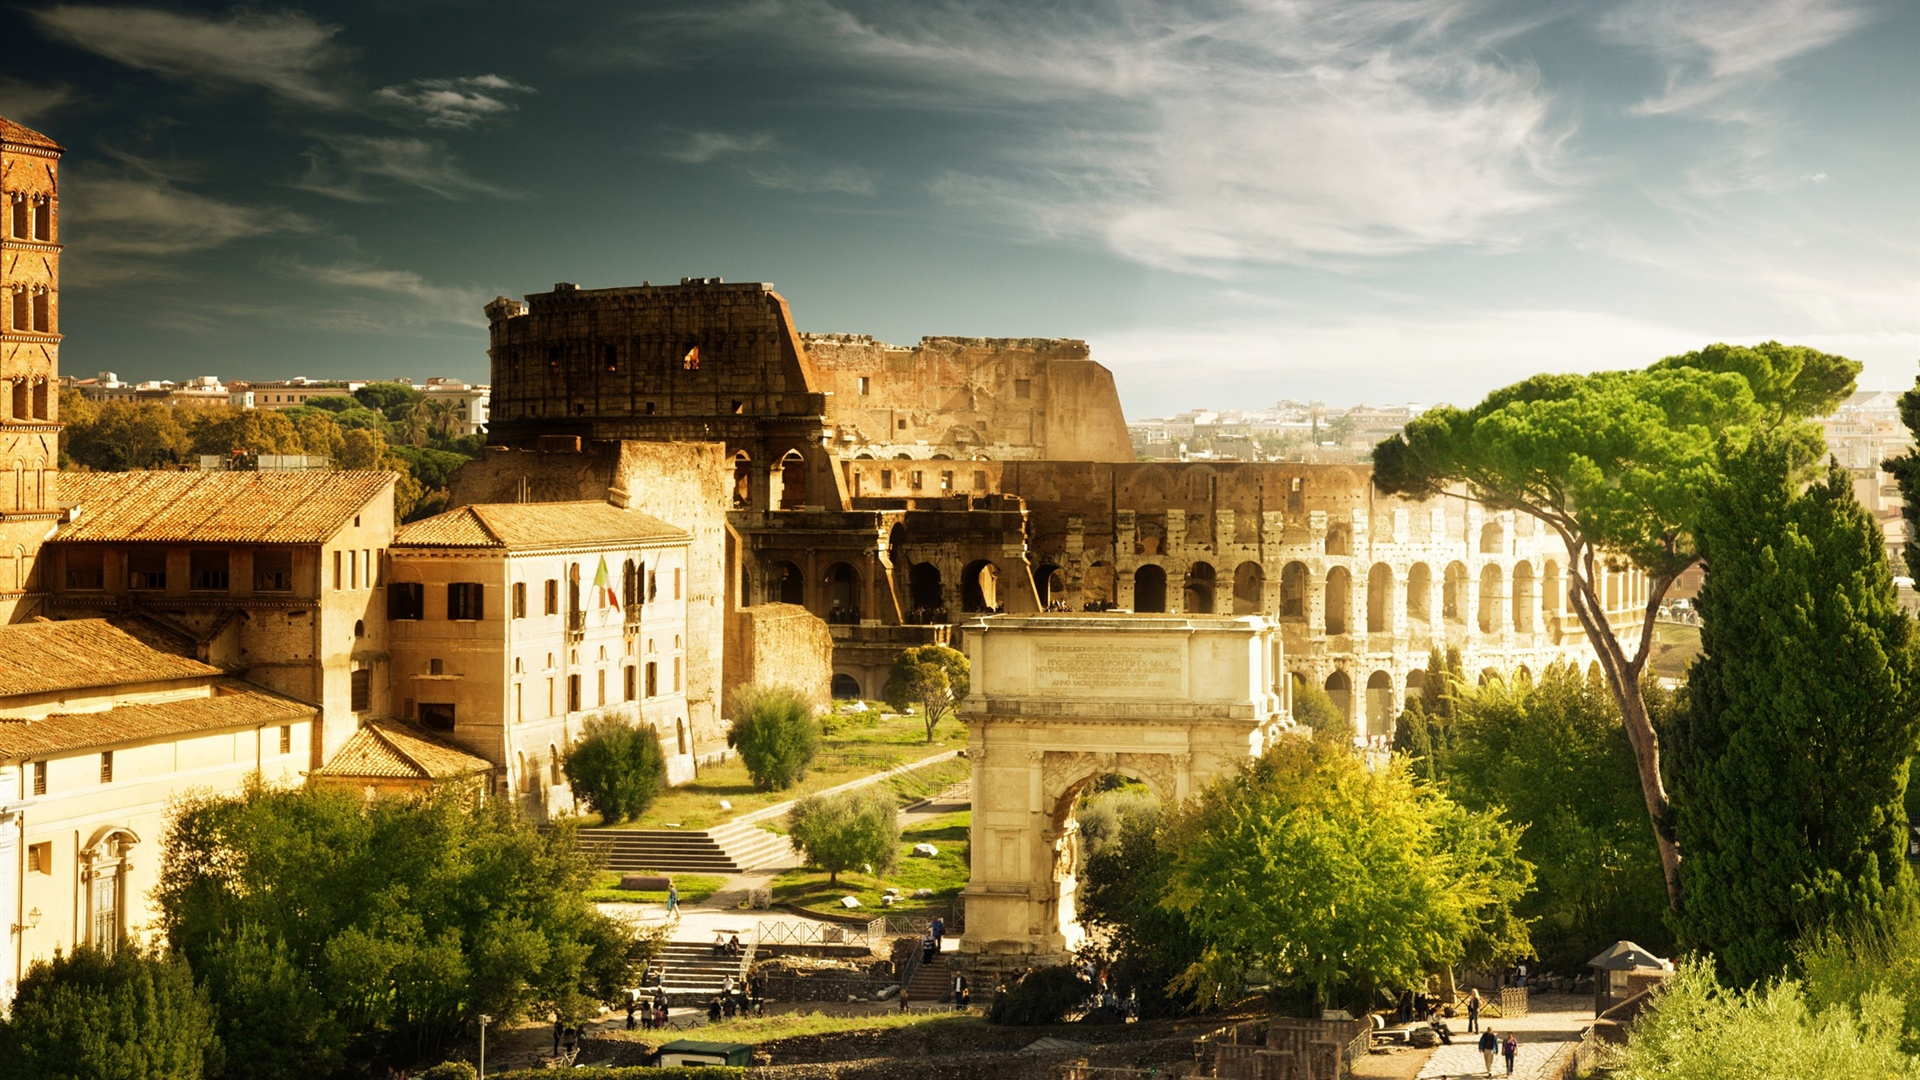 Download Wallpaper 1920x1080 Colosseum, Italy Rome, Arch